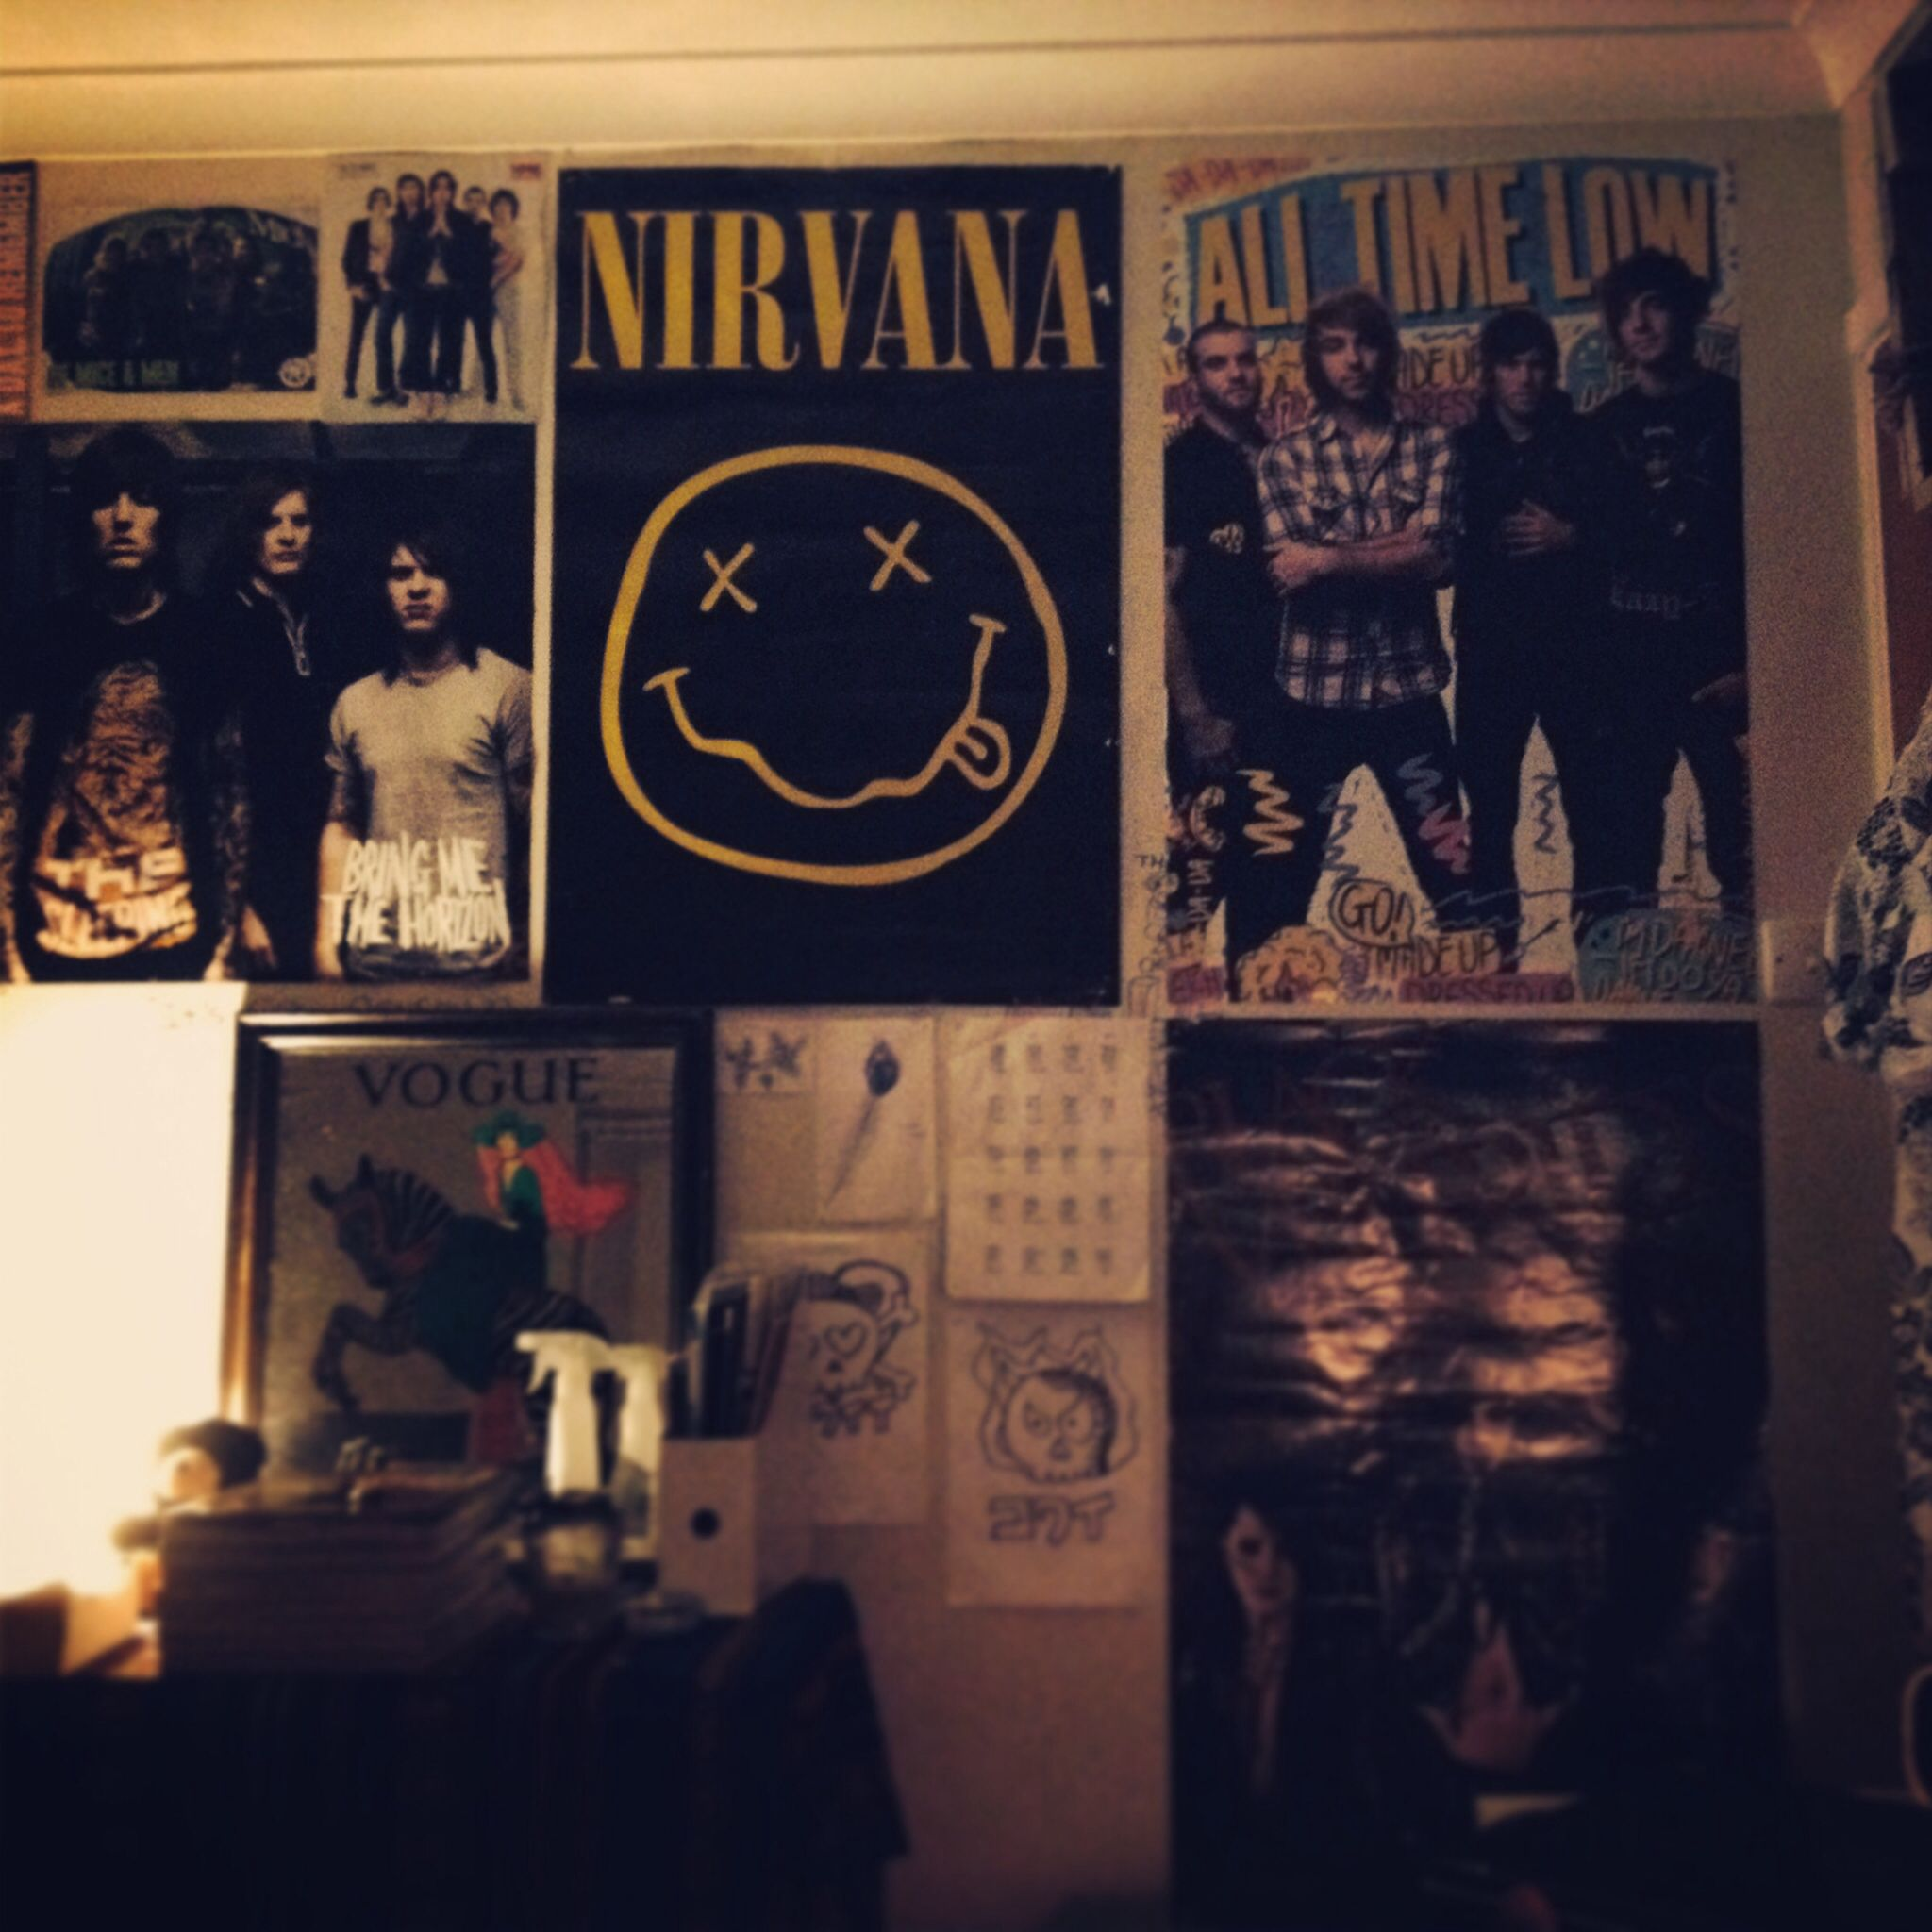 Bedroom wall with posters - My Indie Bedroom Includes Nirvana Bmth And All Time Low Posters A